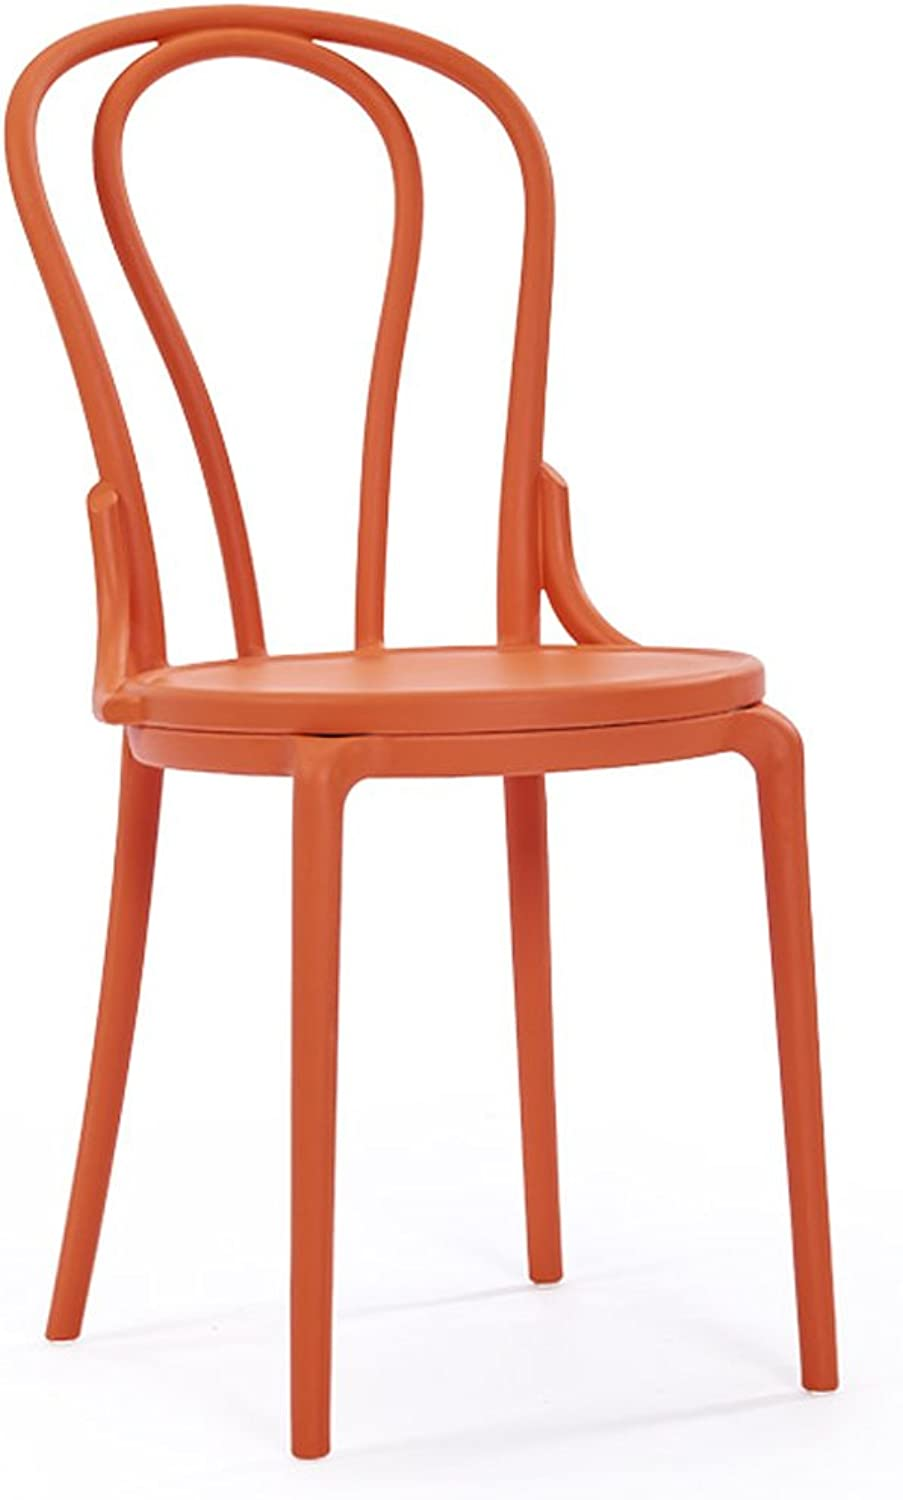 HZB Modern Leisure, Simple Back Chair, Plastic Chair, Creative Dining Chair, Home Fashion Cafe